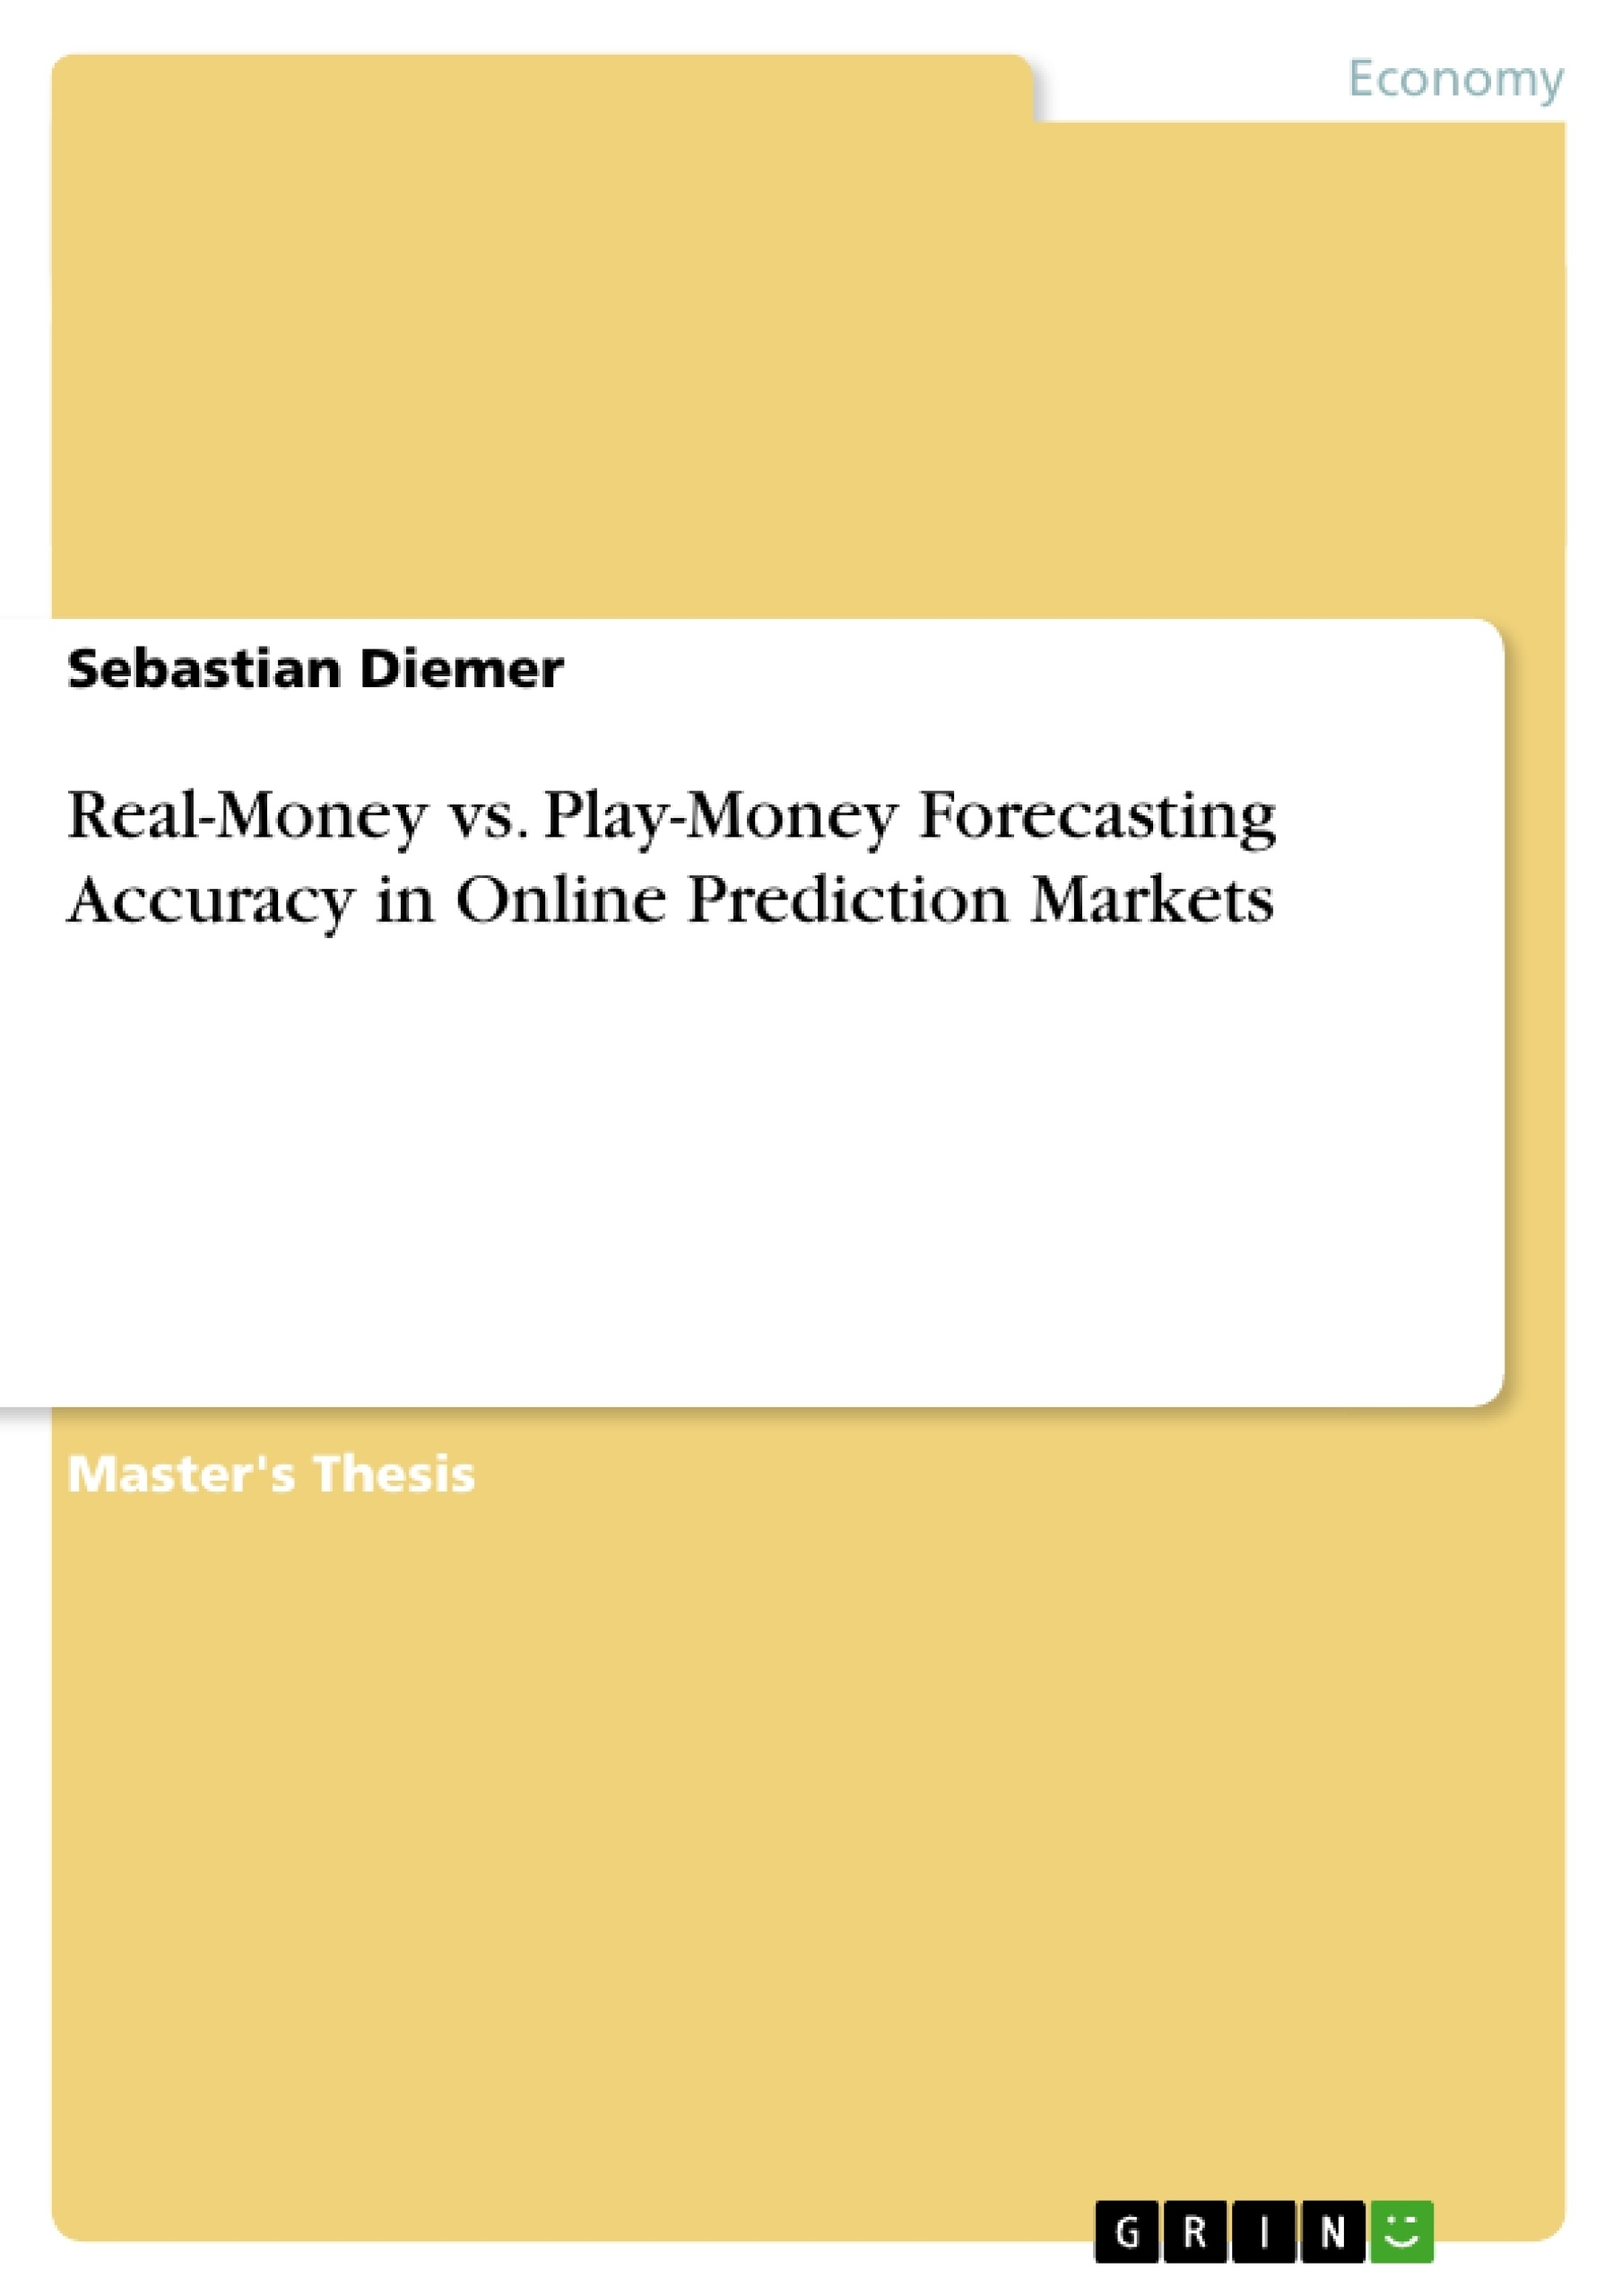 Title: Real-Money vs. Play-Money Forecasting Accuracy in Online Prediction Markets